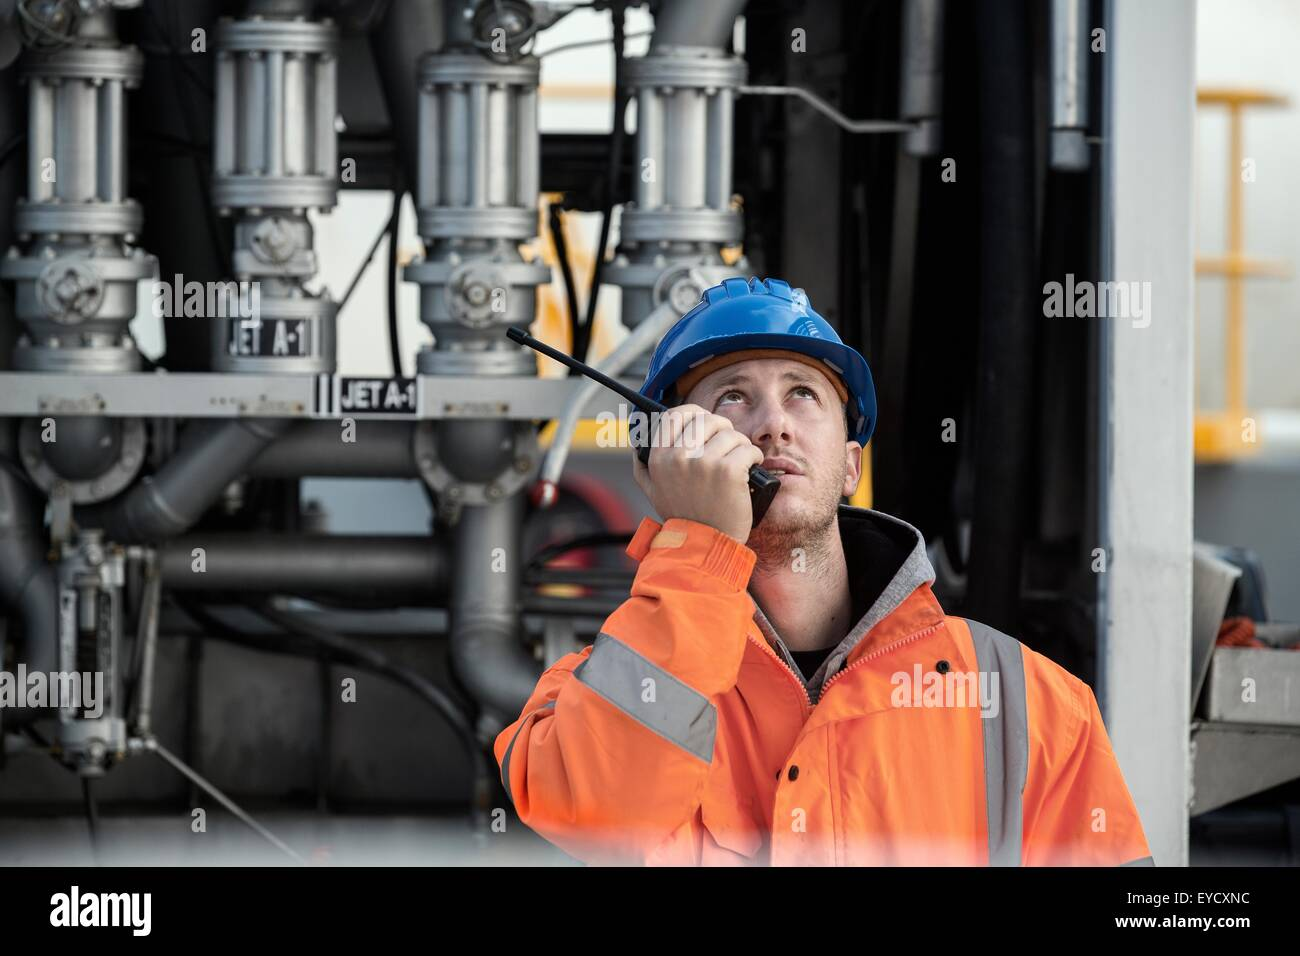 Male worker speaking on two way radio at fuel depot - Stock Image